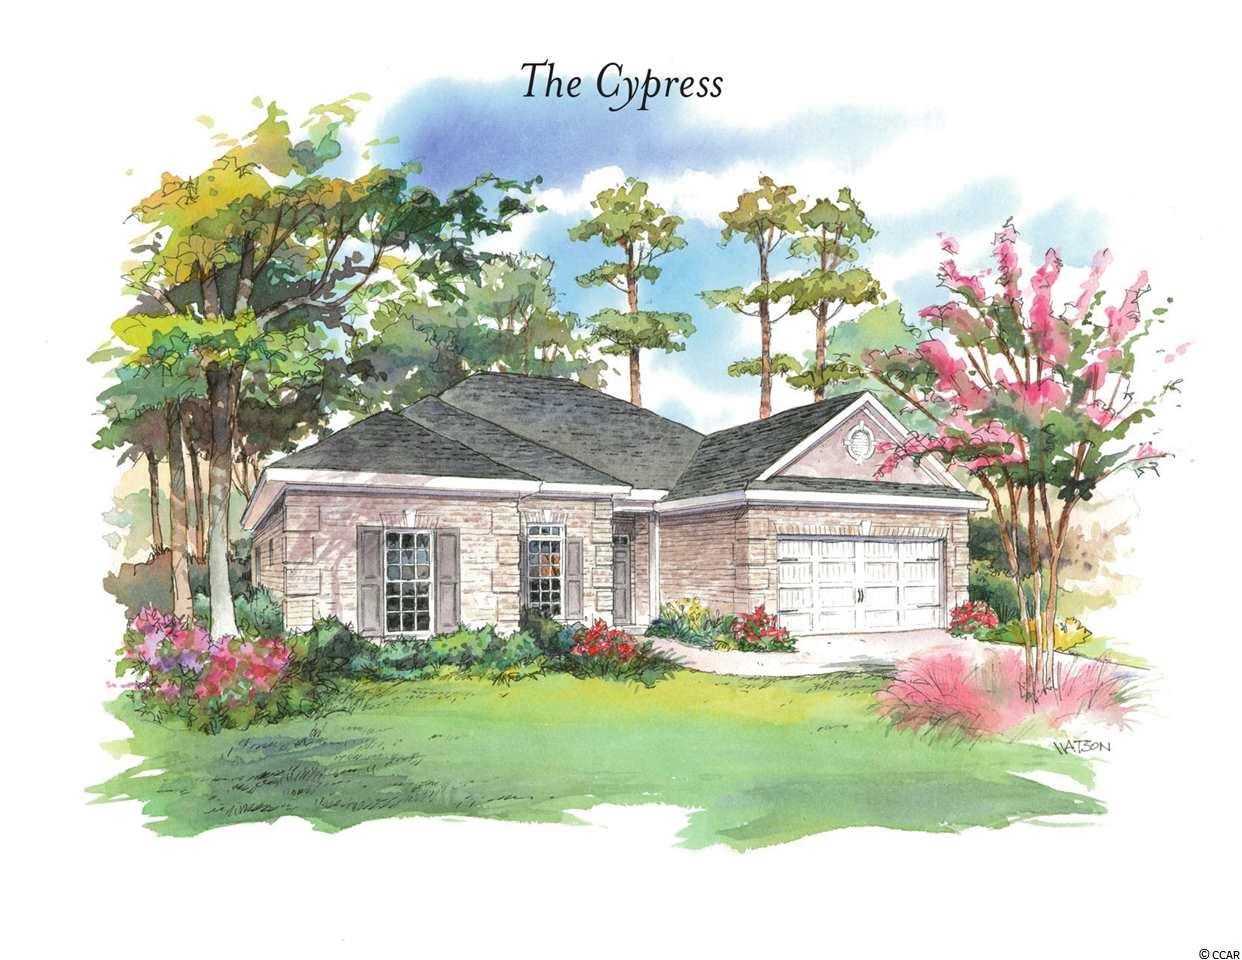 This home is To Be Built, so buy now to custom build your all brick home in one of the finest neighborhoods in the grand strand. The Cypress plan here has been our most popular plan, offers a large covered porch surrounded by a paver patio and is on a corner Lot. Cipriana Park at Grande Dunes offers single family homes nestled in the Ocean Village of the premier community, Grande Dunes. This boutique community has only 4 vacant Lots remaining and is conveniently located to all Myrtle Beach has to offer; beautiful beaches, a treasure trove of restaurants, award winning golf, entertainment venues, designer outlets and shopping, state of the heart medical facilities and much more. All of the conveniences are within walking distance. Grande Dunes provides the finest amenities in the coastal Carolinas, with its' private Ocean Club, Marina, Tennis Club and Championship Golf Courses. One of the area's finest and most desired builders, Traditional Homebuilders, constructs your home to be well above necessary codes and standards by using the highest quality materials, finest and consistent contractors, constant supervision and attention to every detail. Come live the Grande life. Please Note: Photos of the home are not this home but are from a past Cypress Model Home.